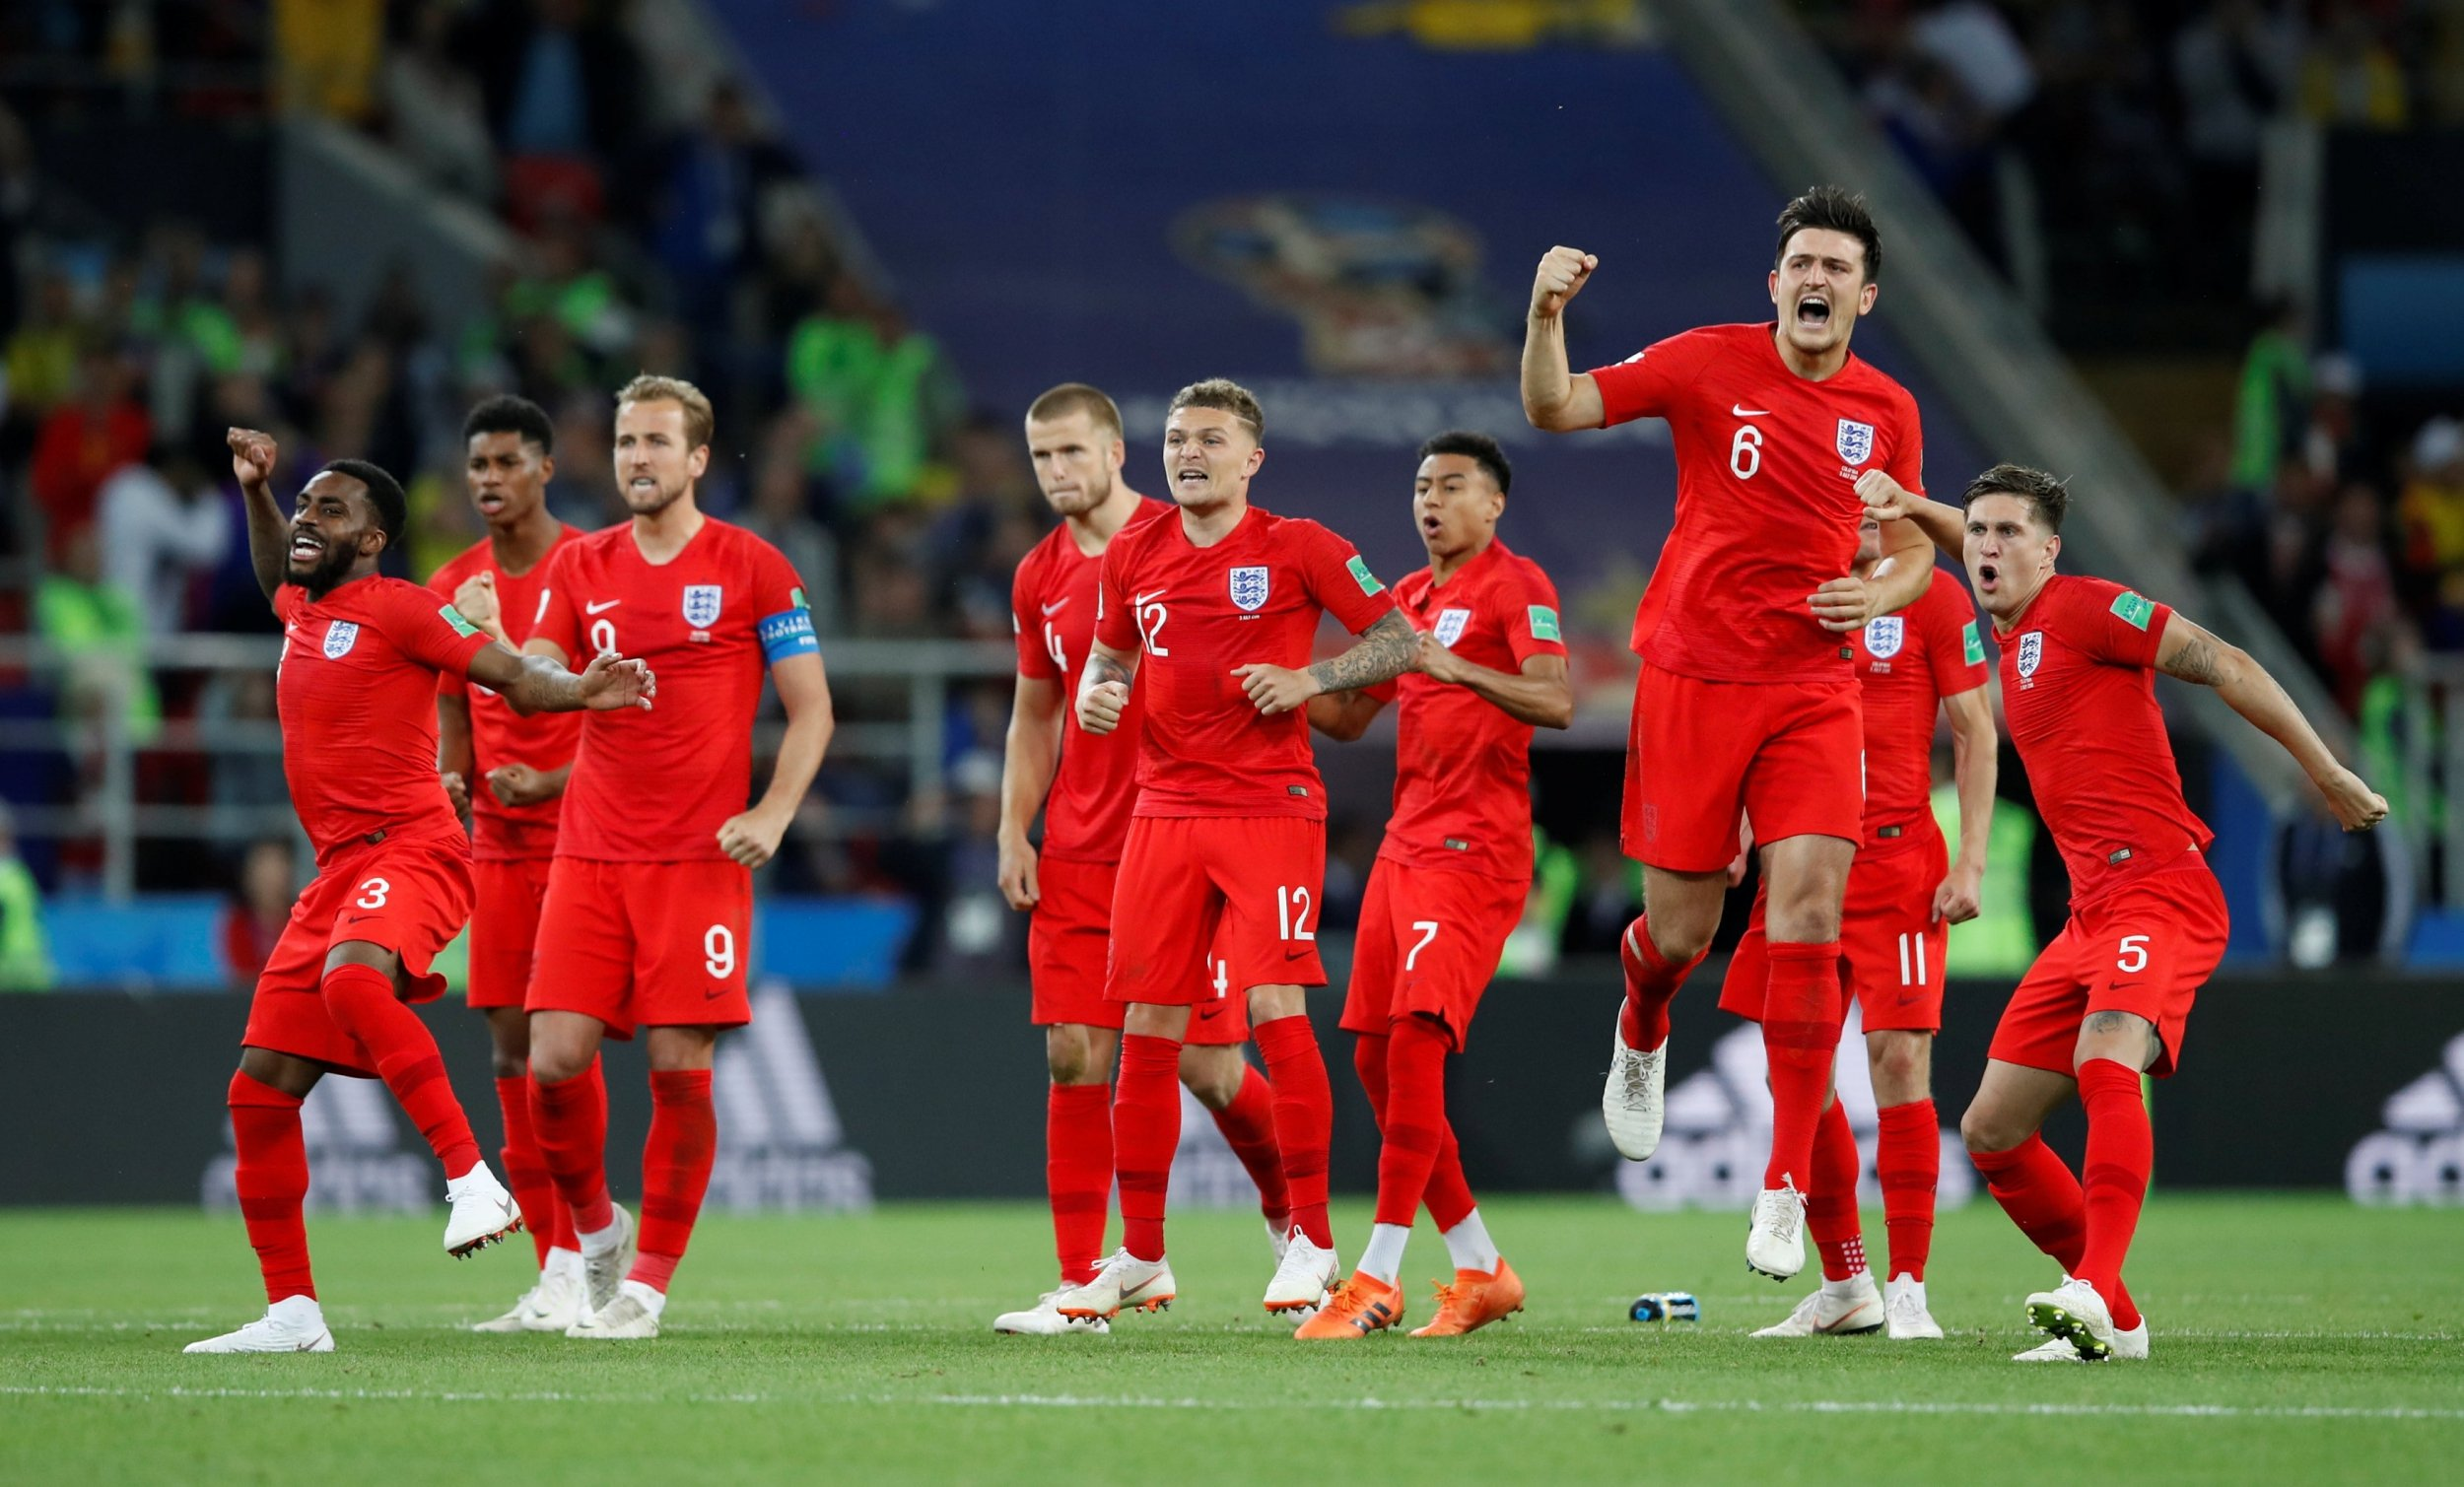 England qualifies for the quarter finals after beating Colombia